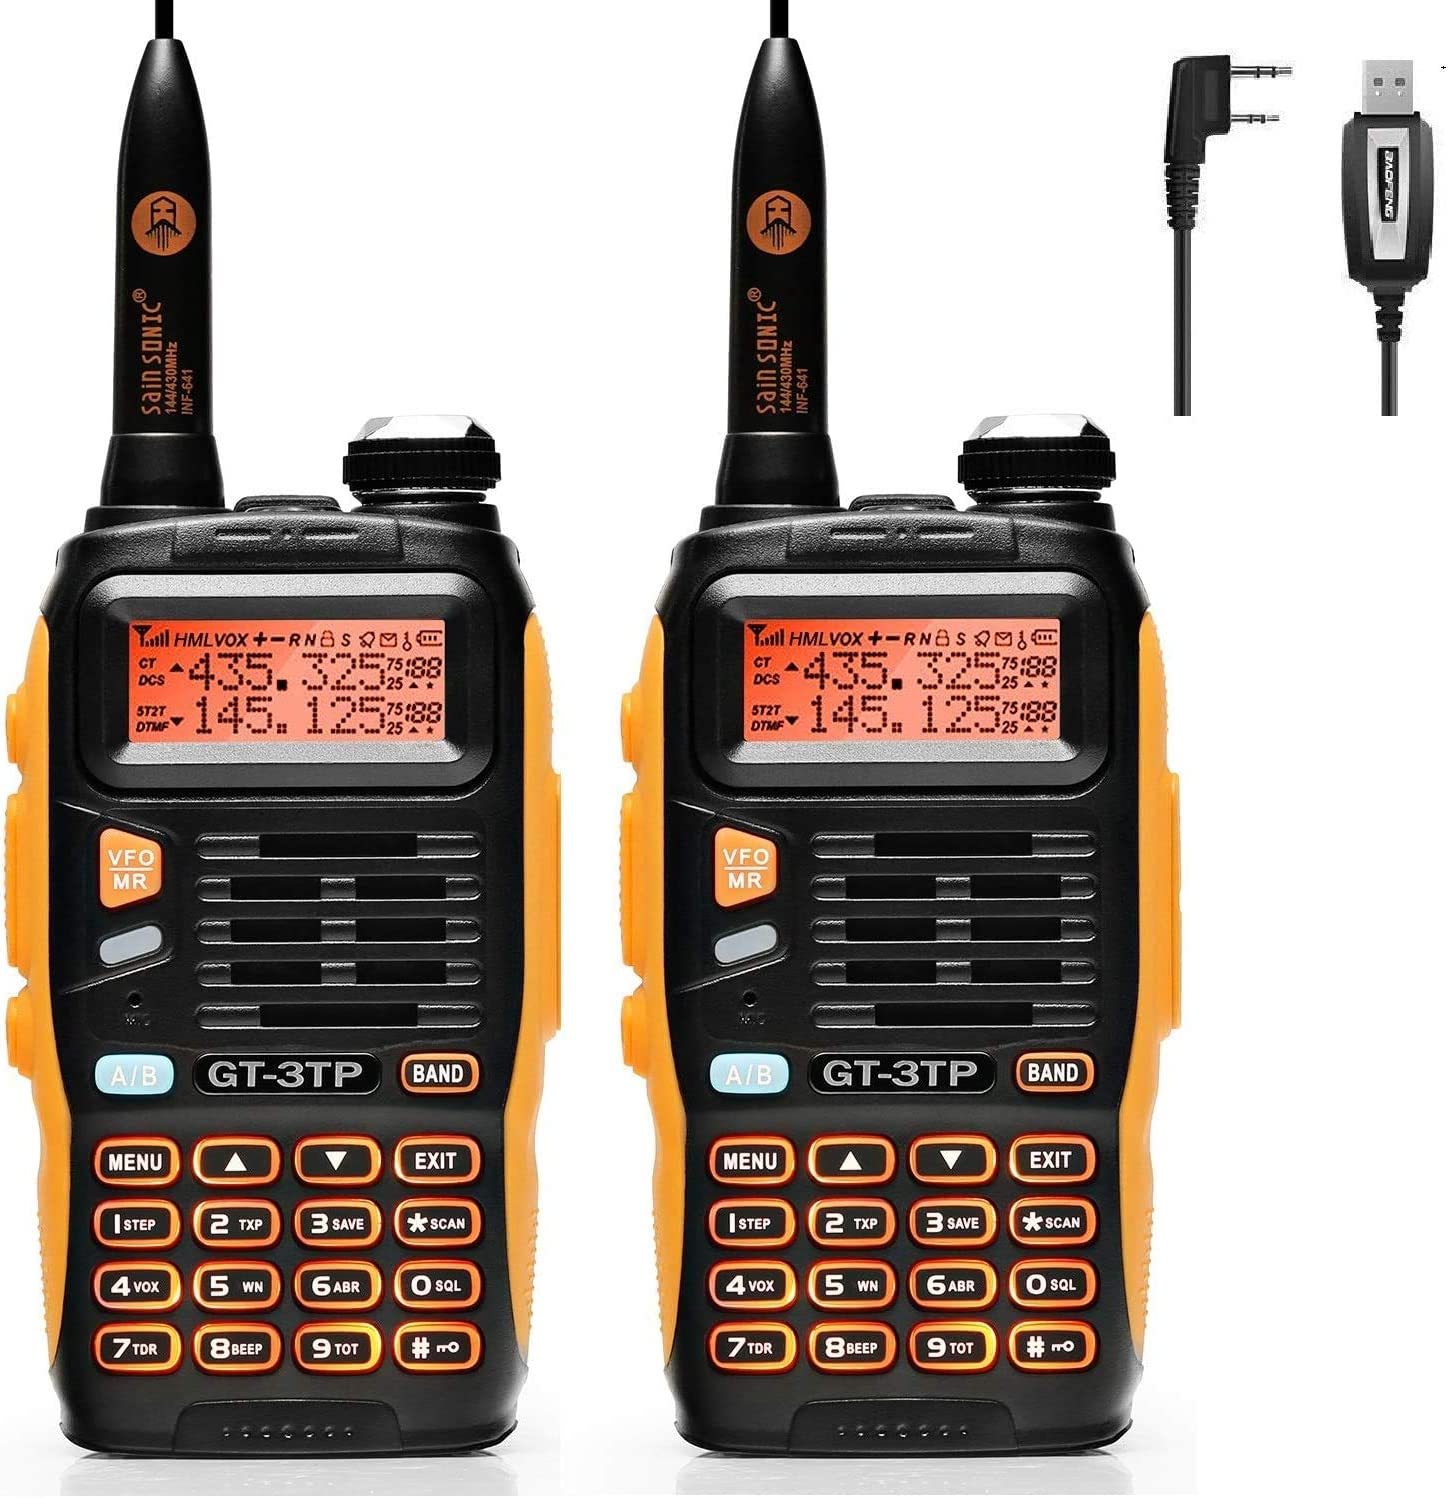 Baofeng gt-3tp mark iii - walkie-talkie, 8w (2 pcs with programming cable).